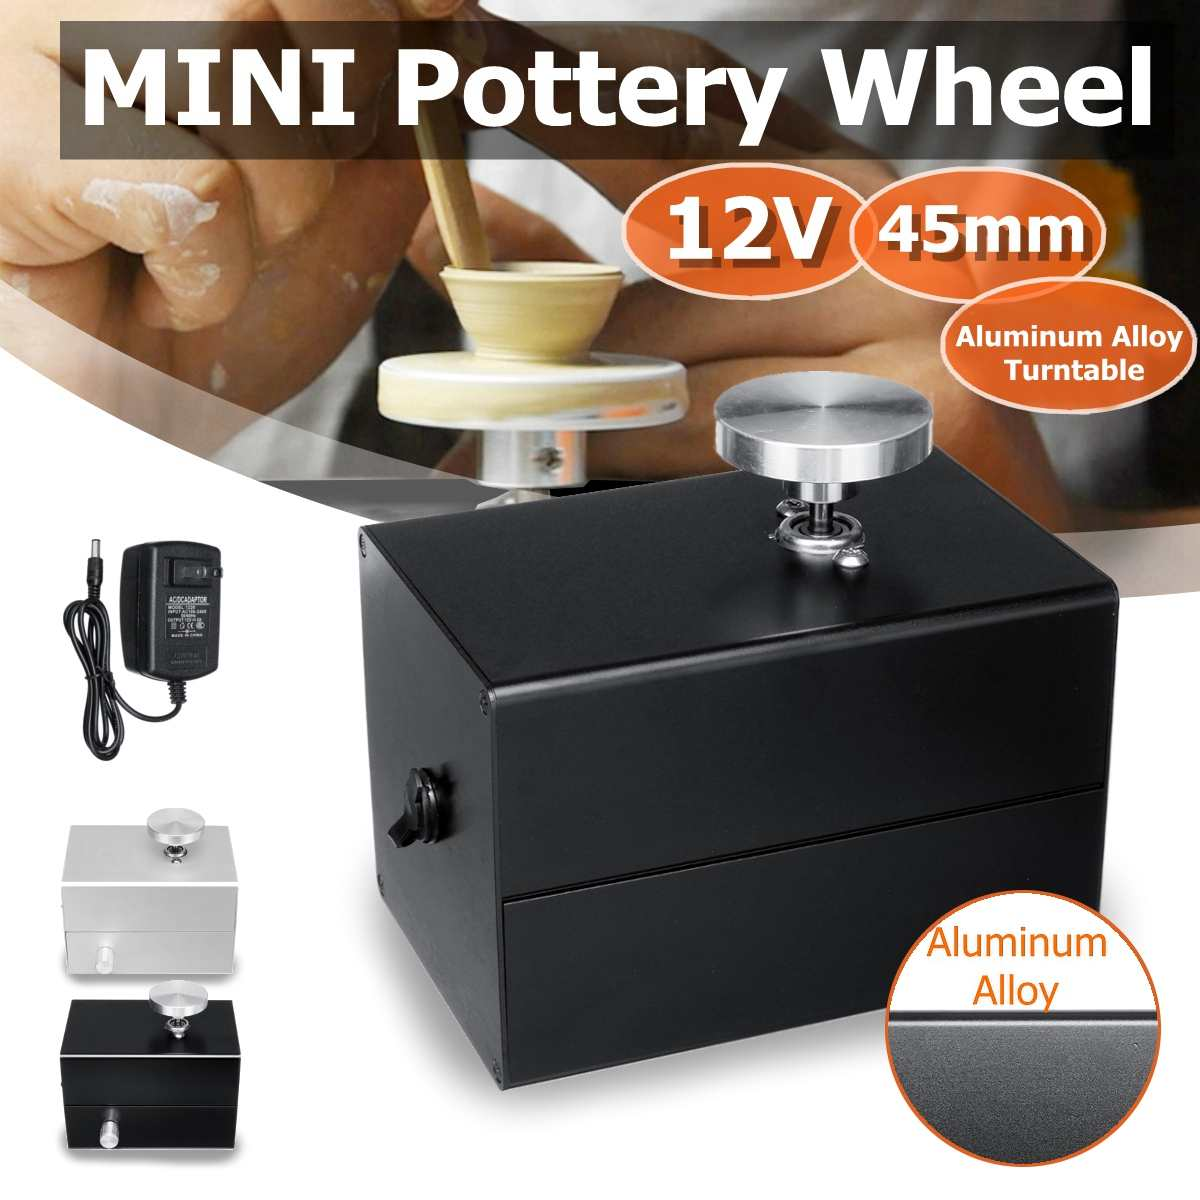 12V Aluminum Alloy Fingertip Mini Pottery Wheel Ceramic Machine 4.5cm Turntable Knob Stepless Speed Change